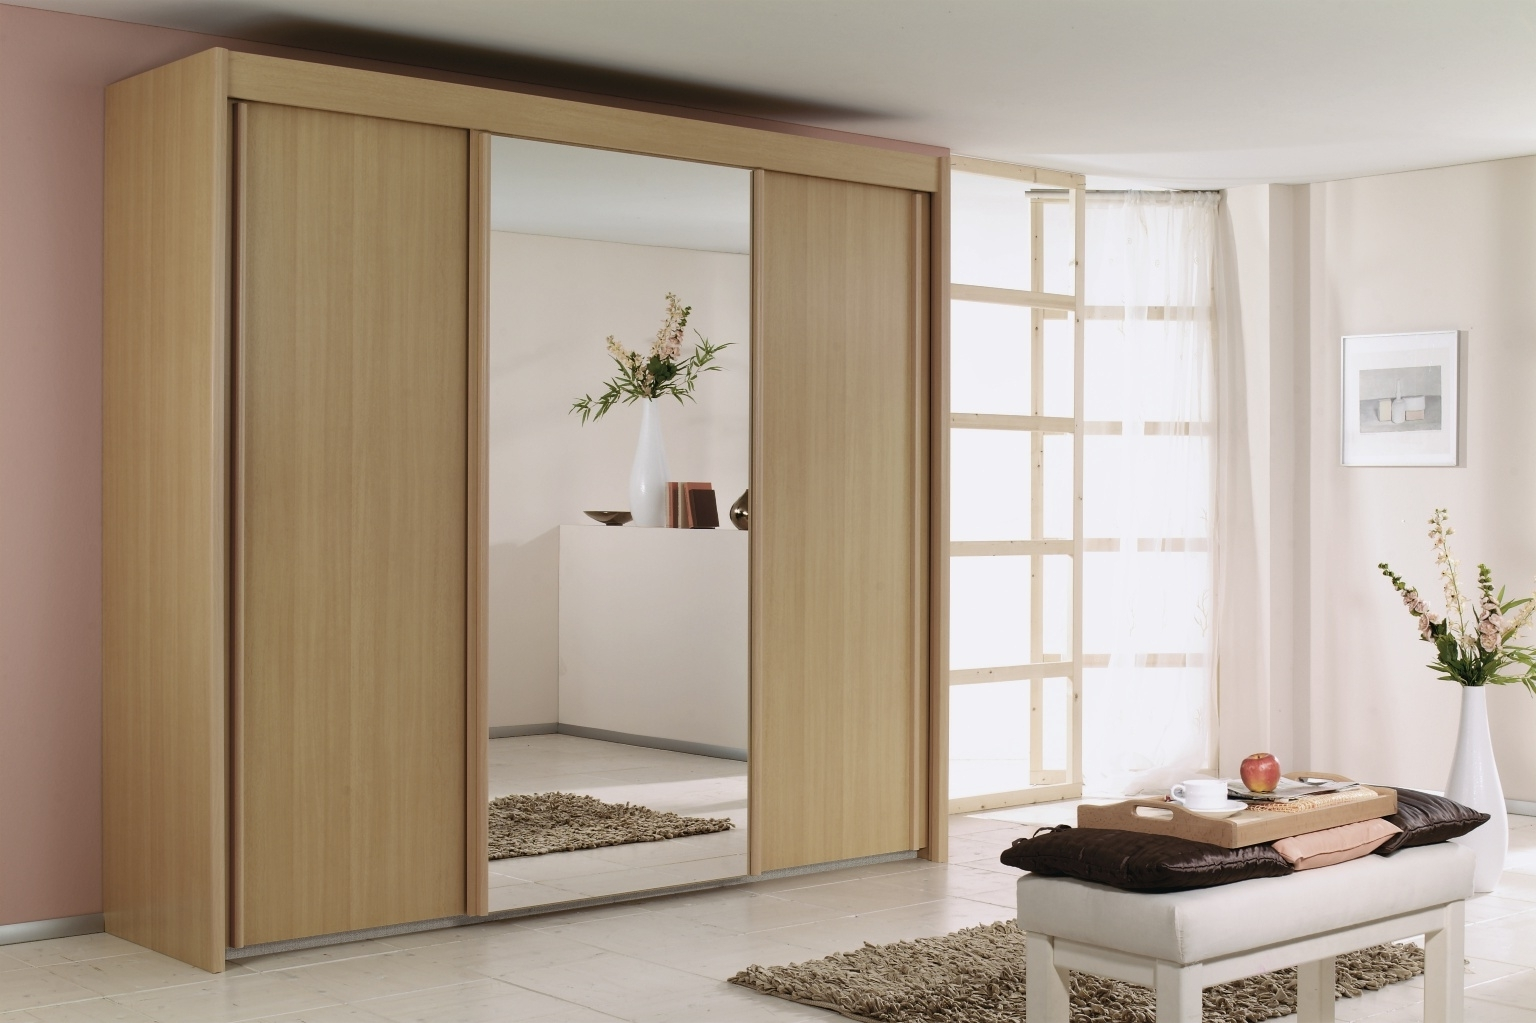 Imperial Wardrobes With Regard To Latest Rauch Imperial Sliding Wardrobe – Furniture Brothers (View 9 of 15)